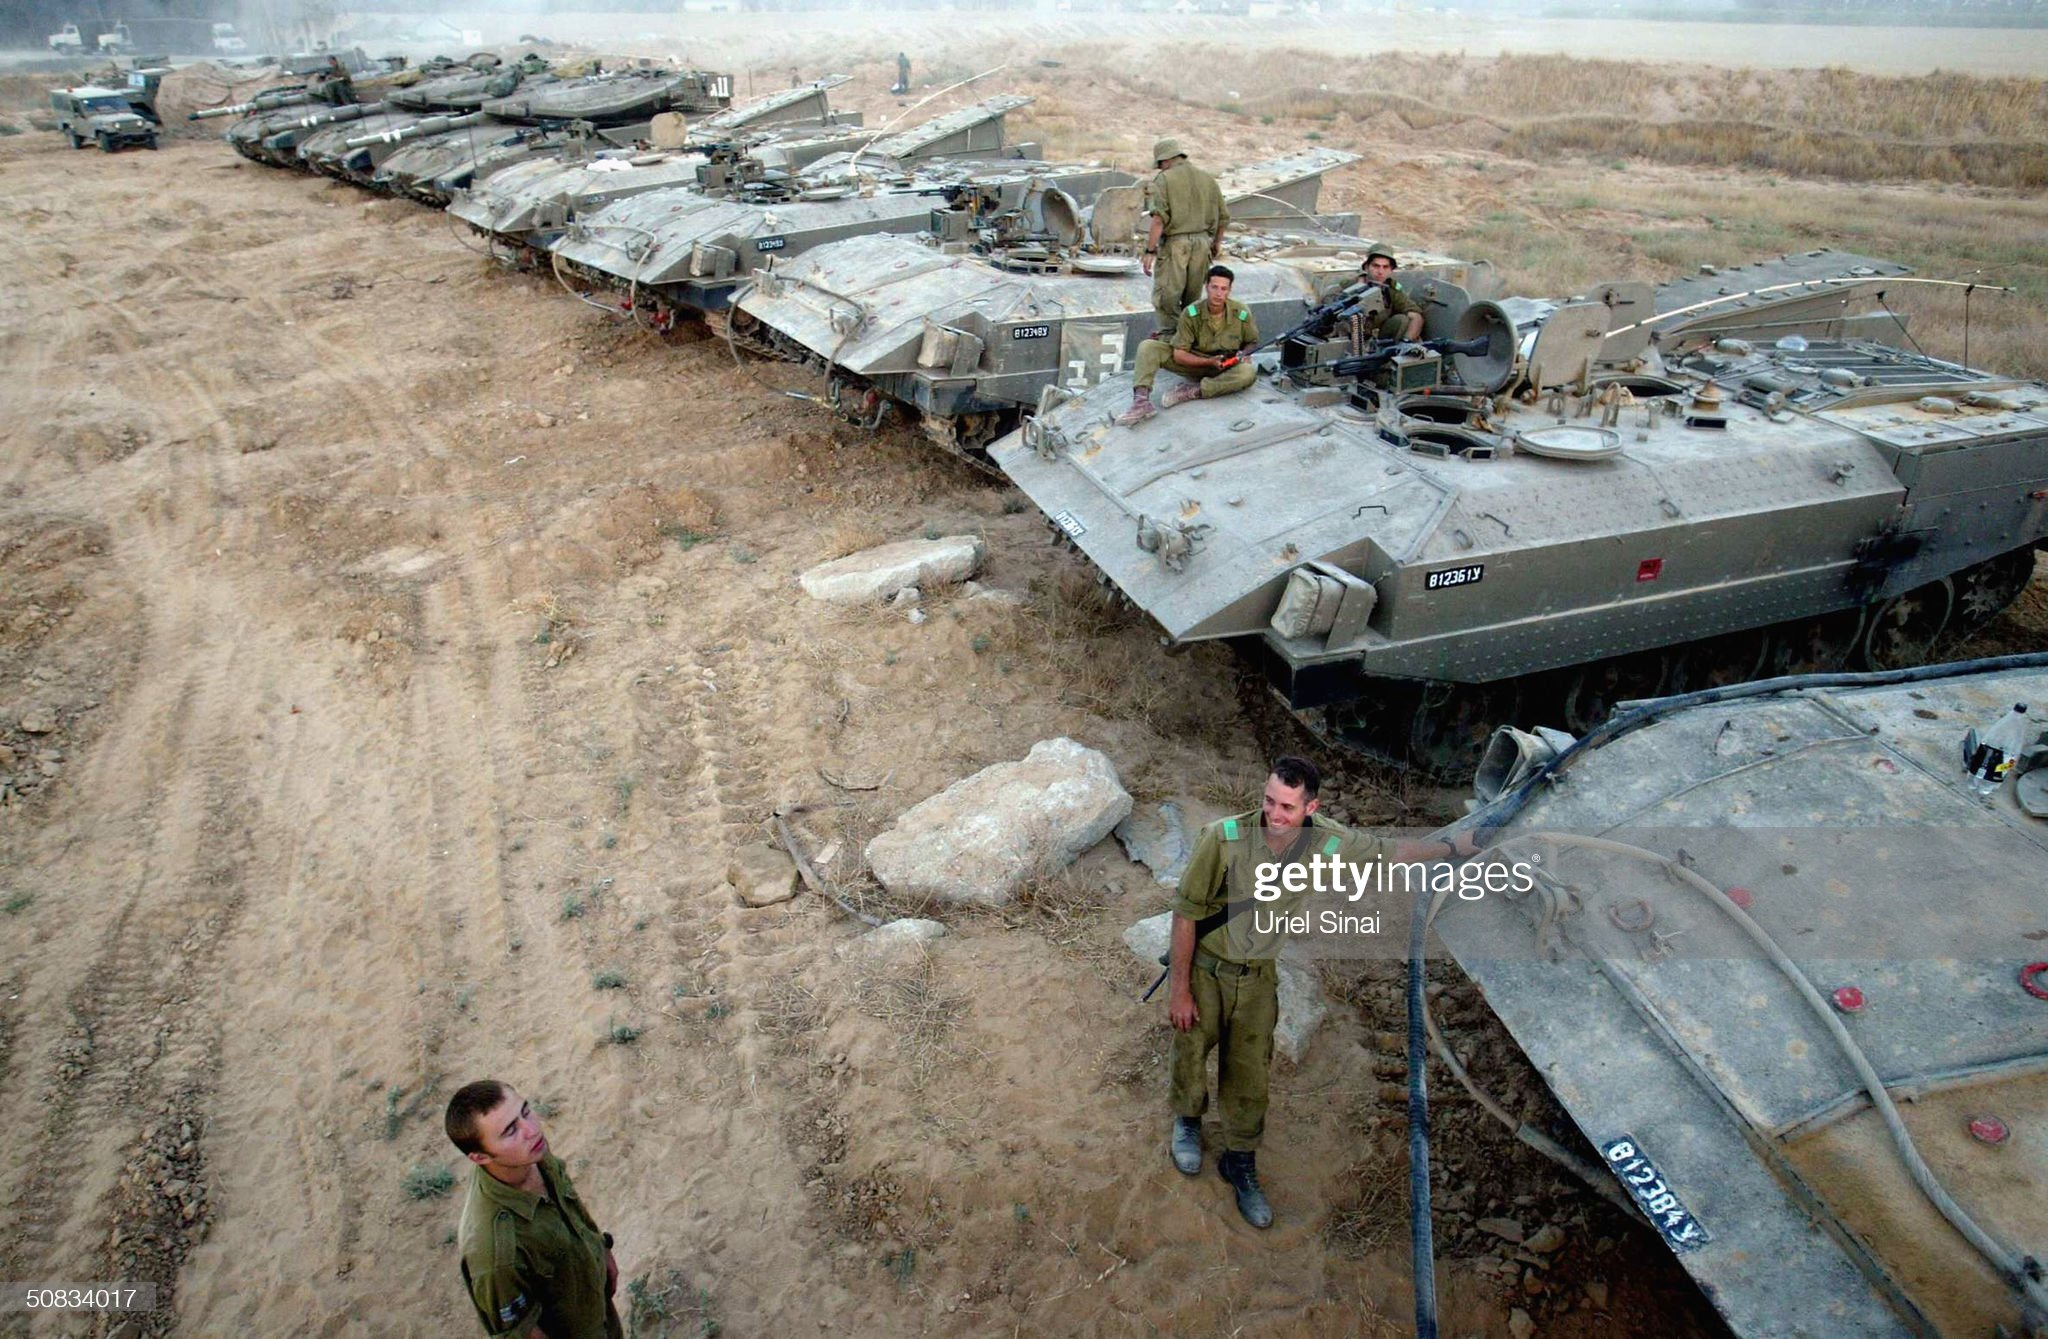 israeli-soldiers-prepares-merkeva-tanks-on-may-13-at-the-suffa-in-picture-id50834017?s=2048x2048